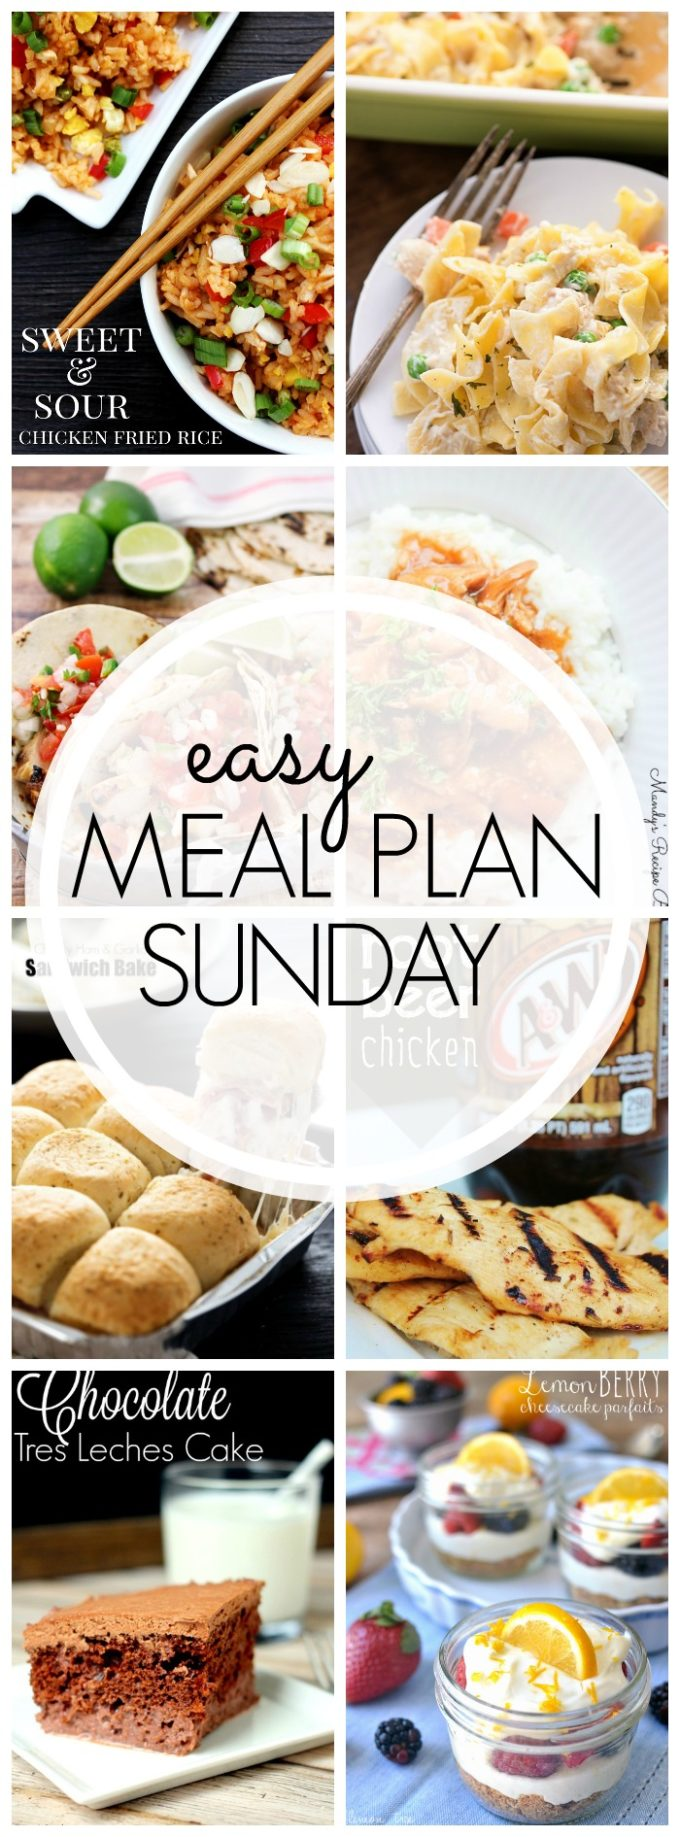 A week of delicious meals all in one place to make your meal planning quick, easy, and tasty!